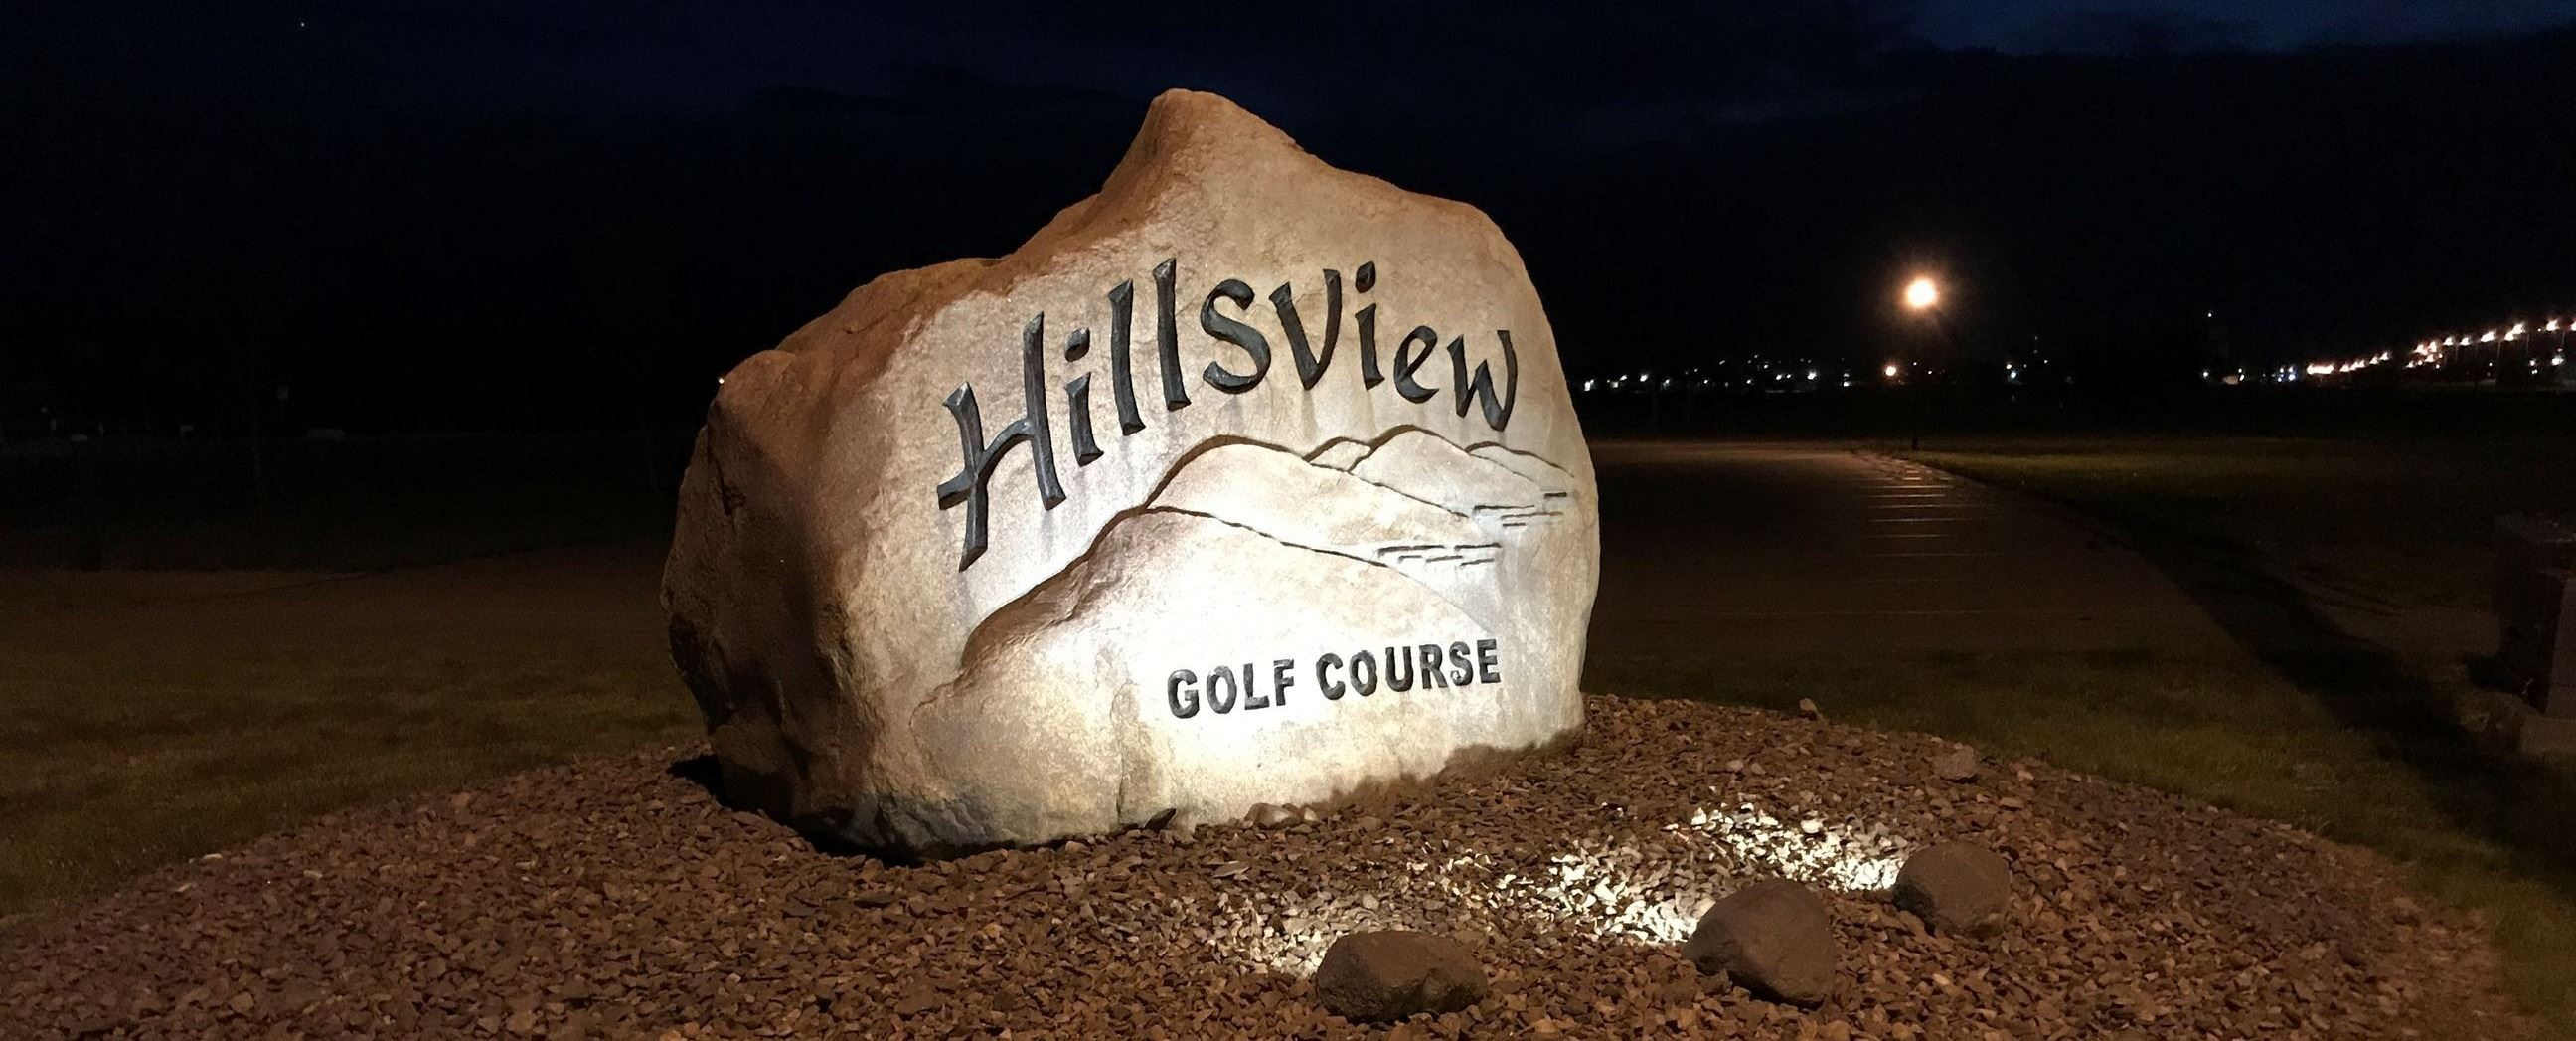 HILLSVIEW  WELCOME ROCK IMAGE